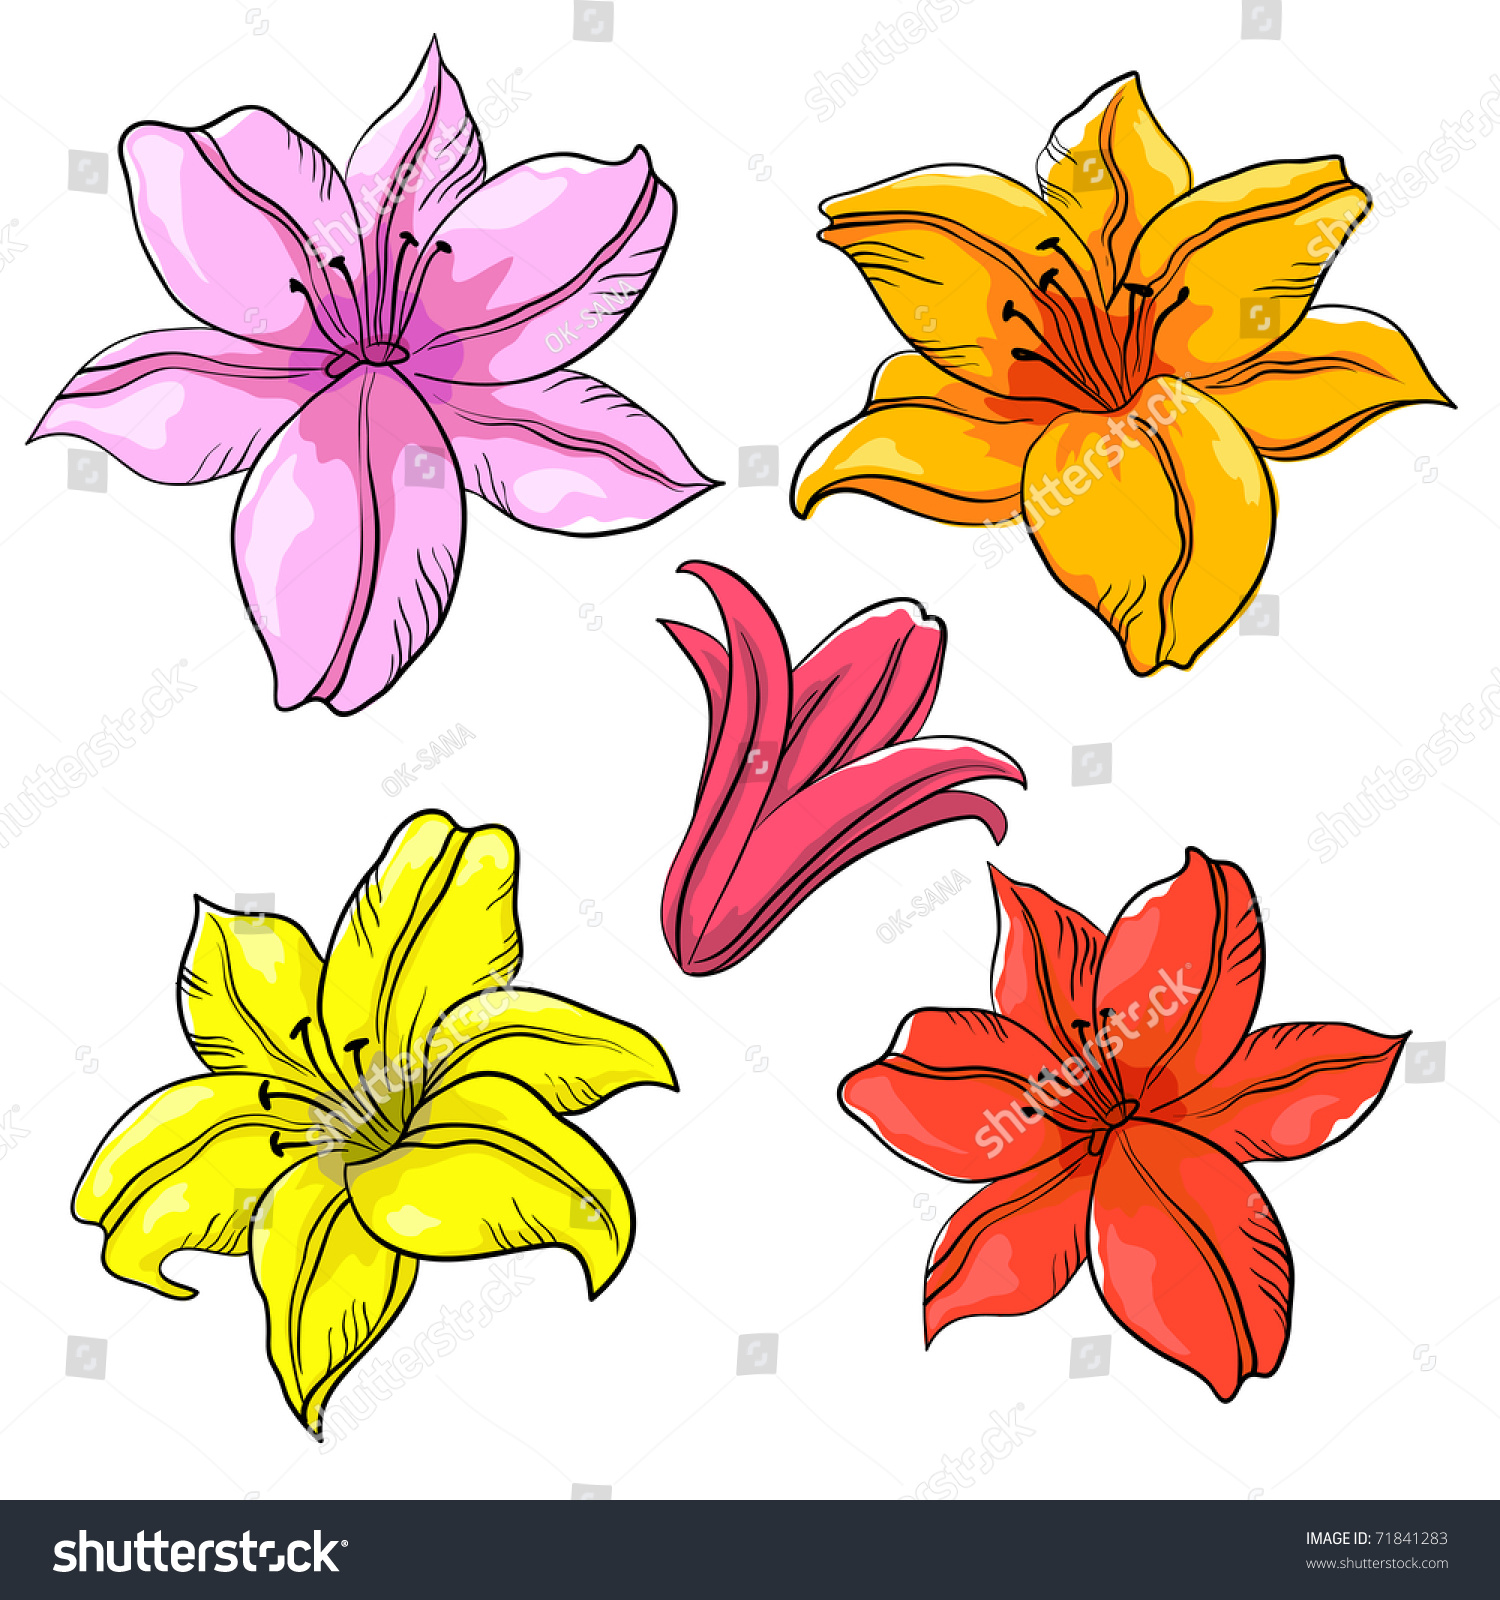 Flowers lily multicoloured isolated drawing set stock illustration flowers lily multi coloured isolated drawing set izmirmasajfo